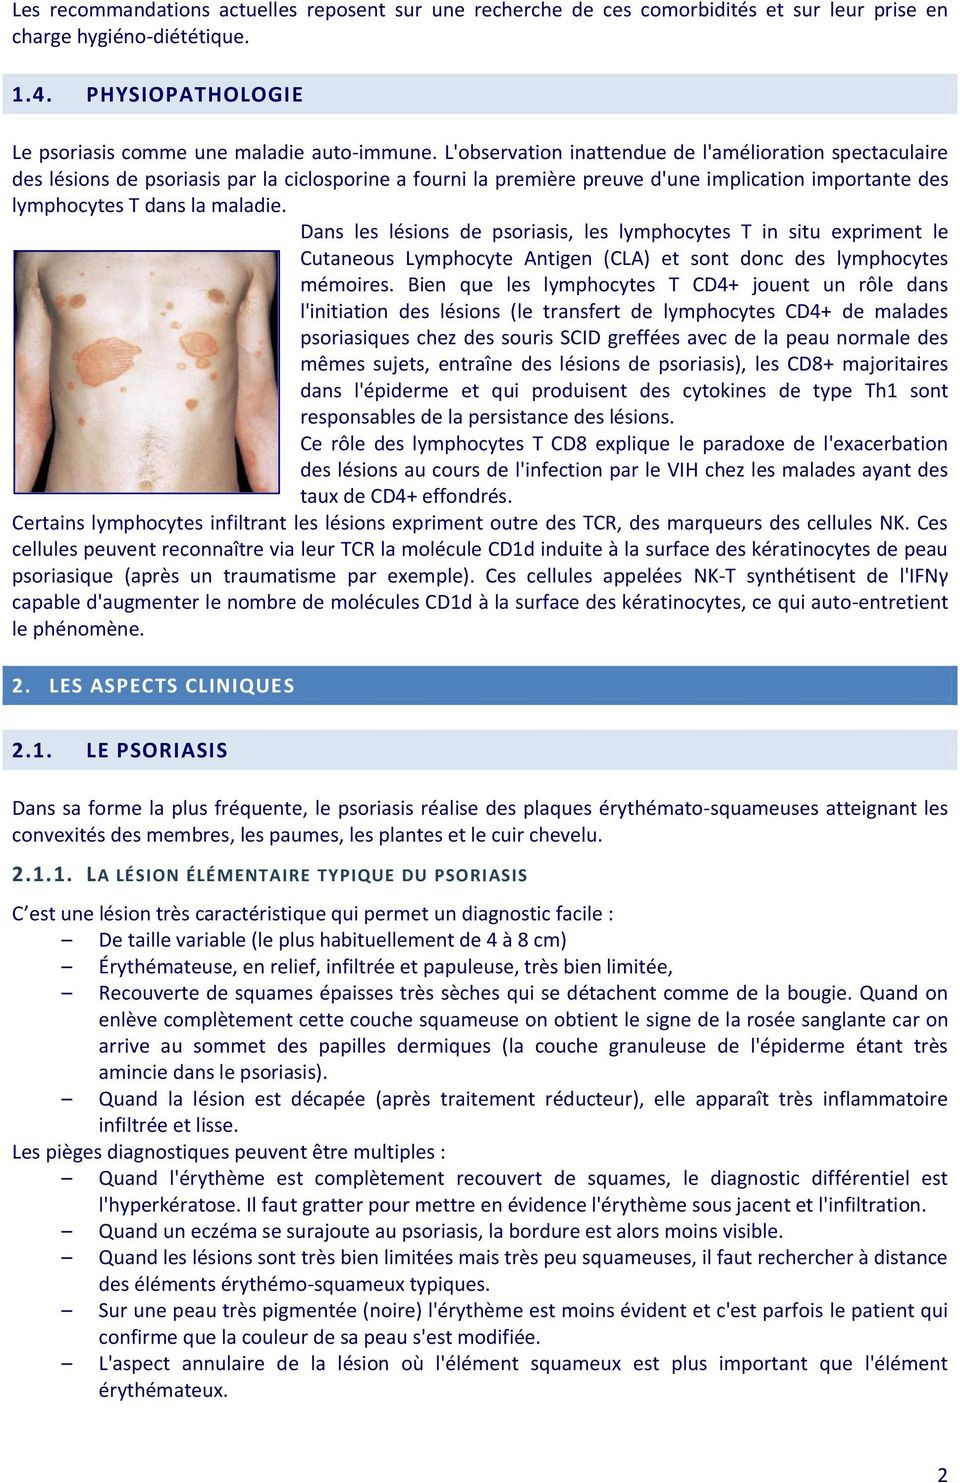 Dans les lésions de psoriasis, les lymphocytes T in situ expriment le Cutaneous Lymphocyte Antigen (CLA) et sont donc des lymphocytes mémoires.